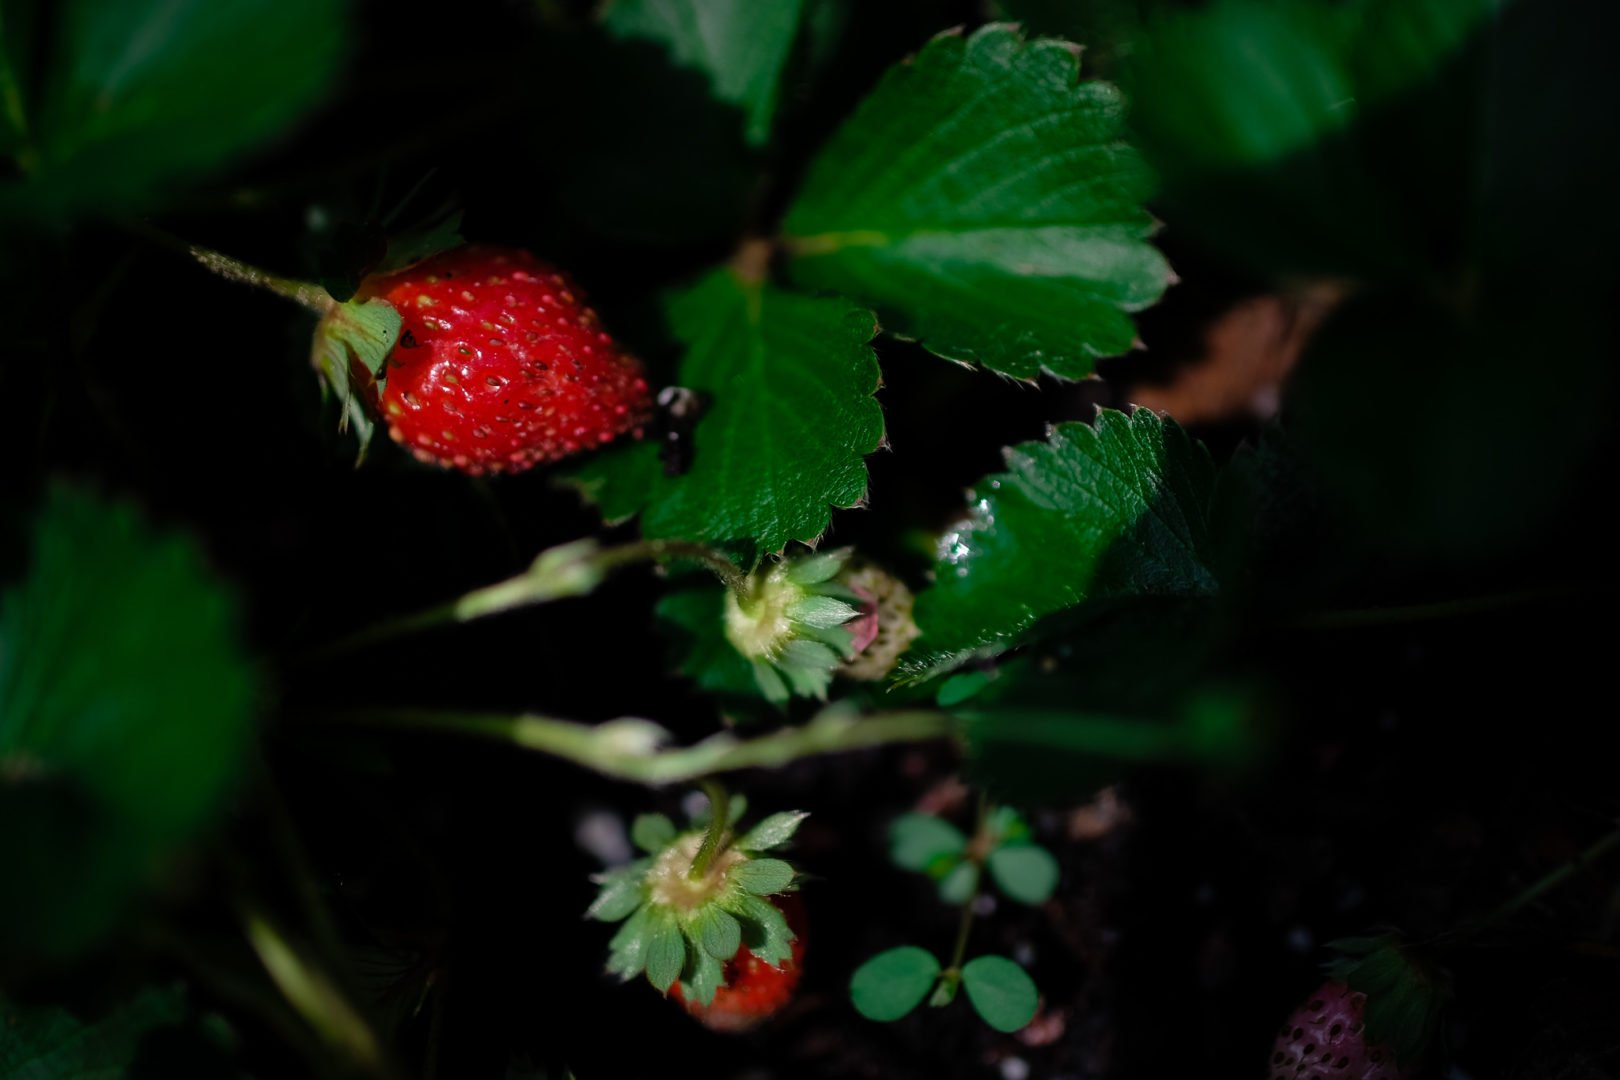 strawberry plant with some fruit